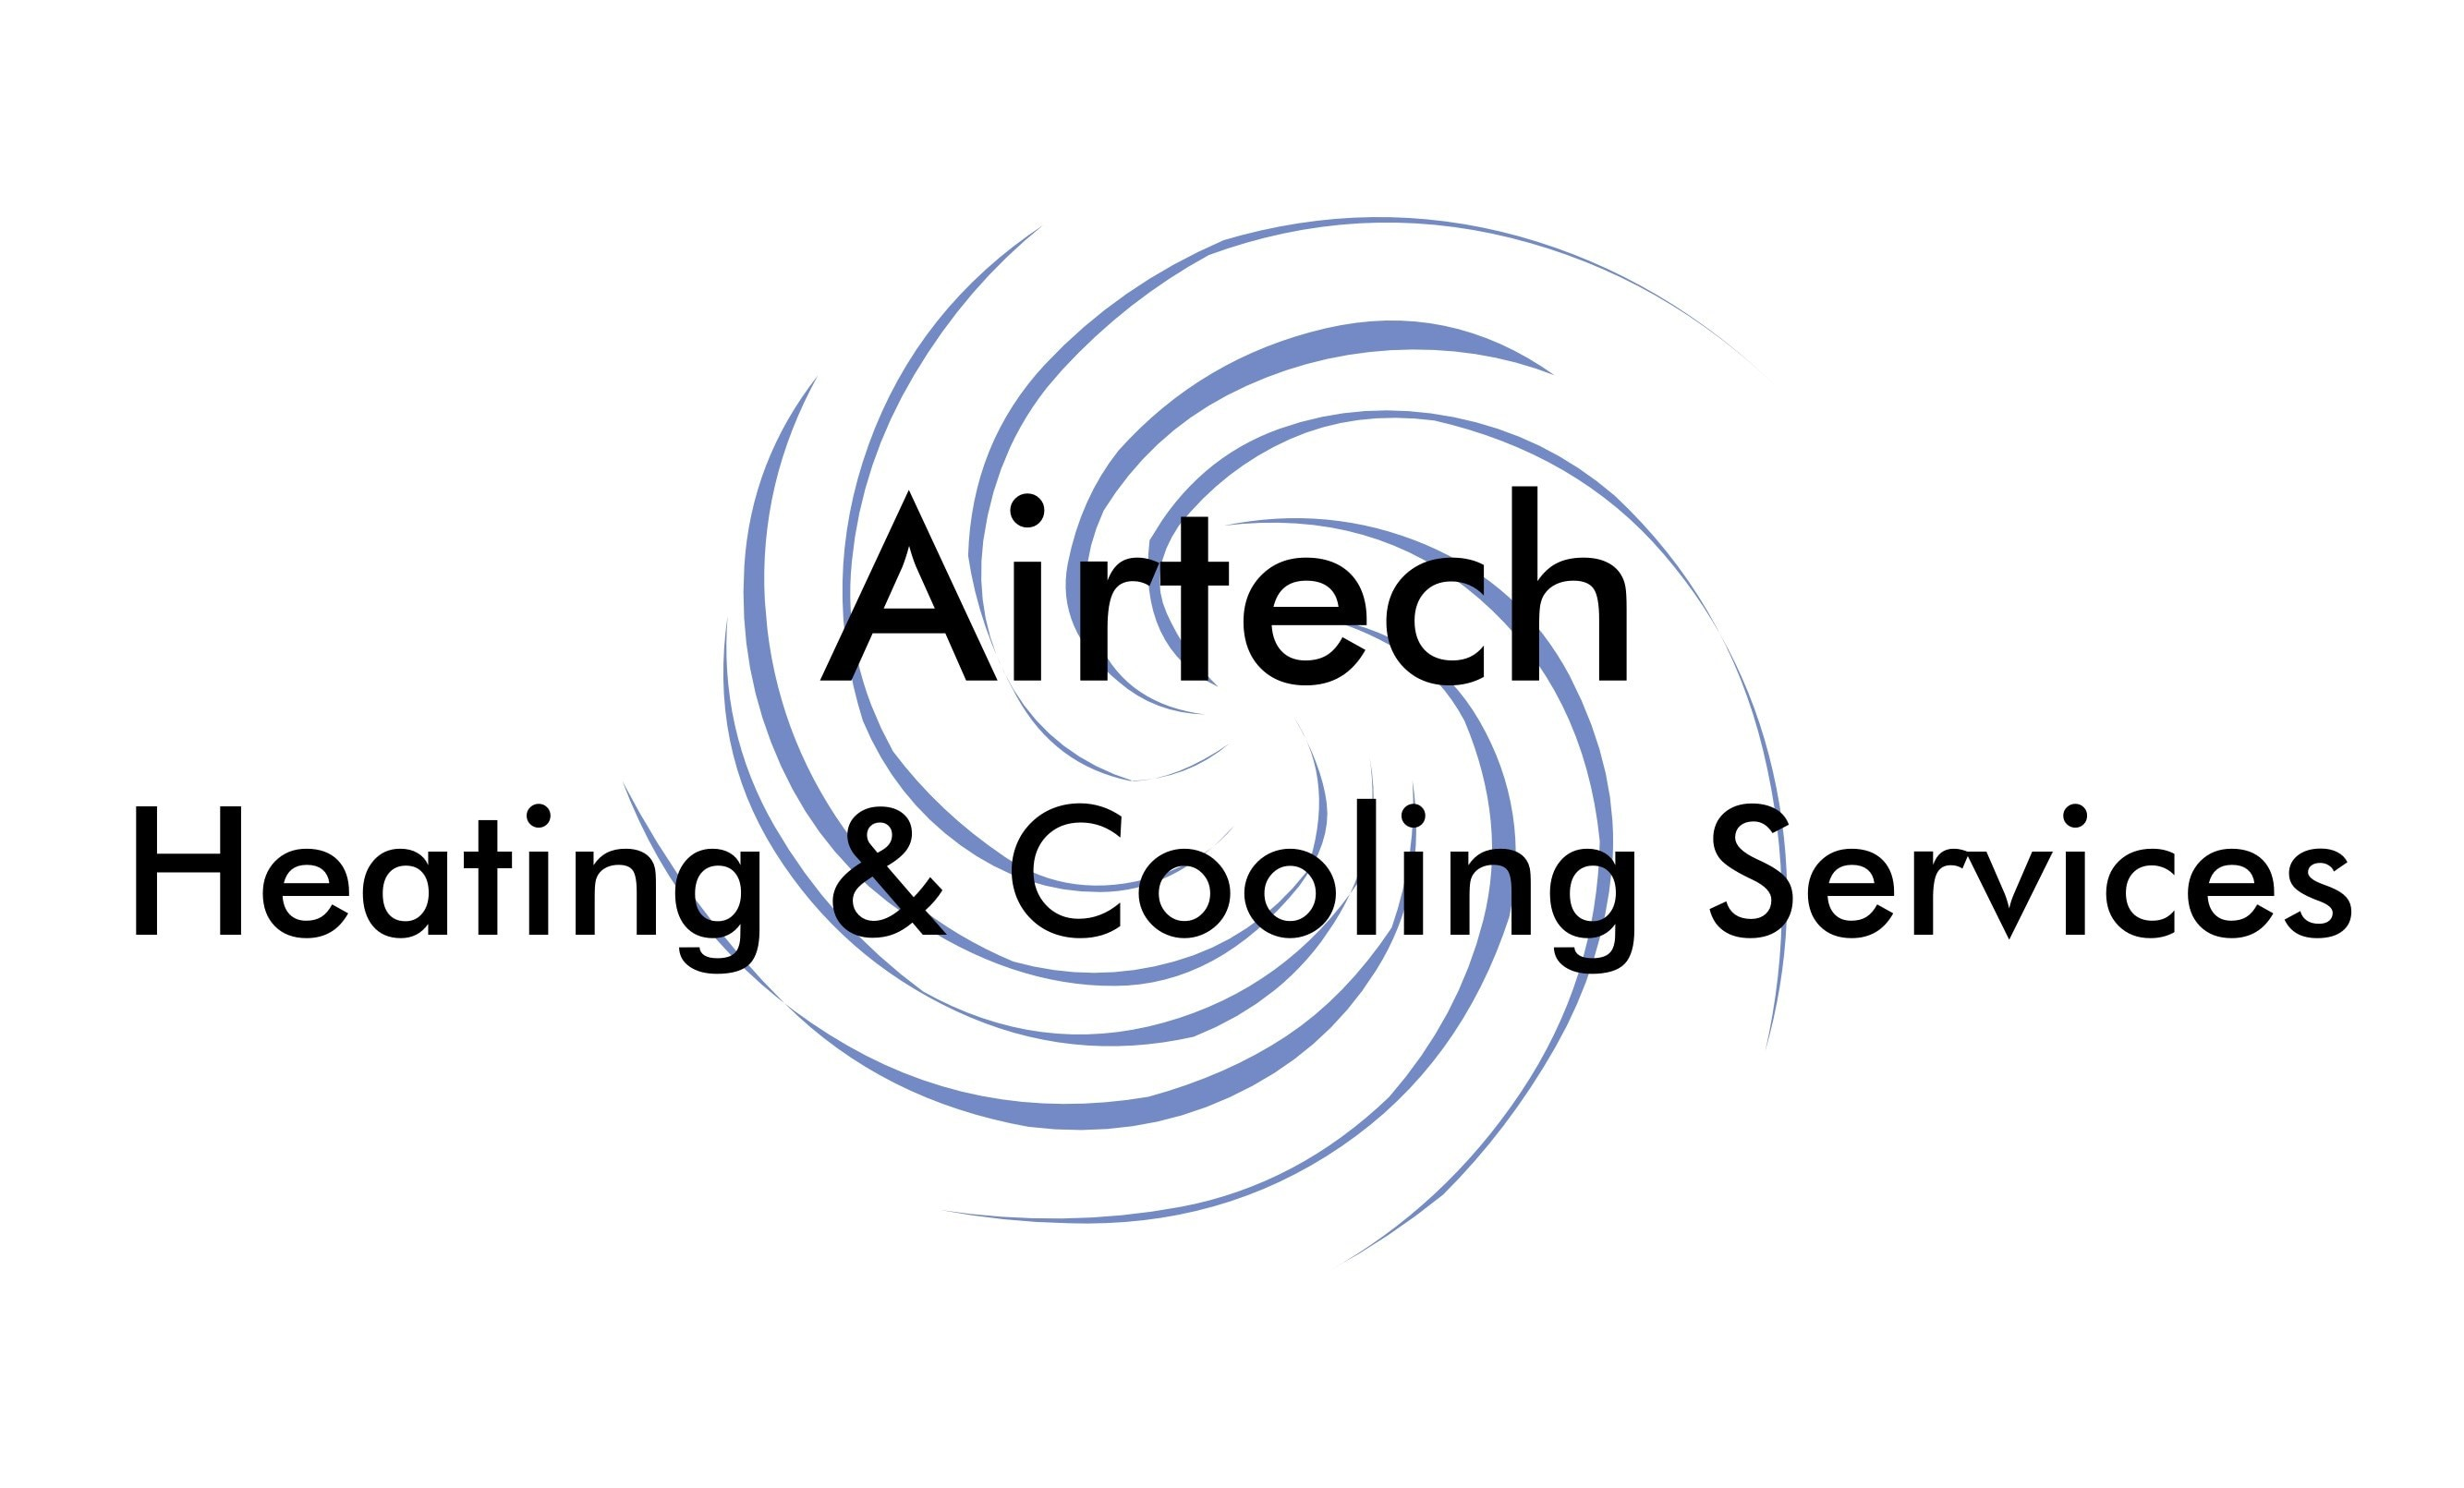 Airtech Heating & Cooling Services logo